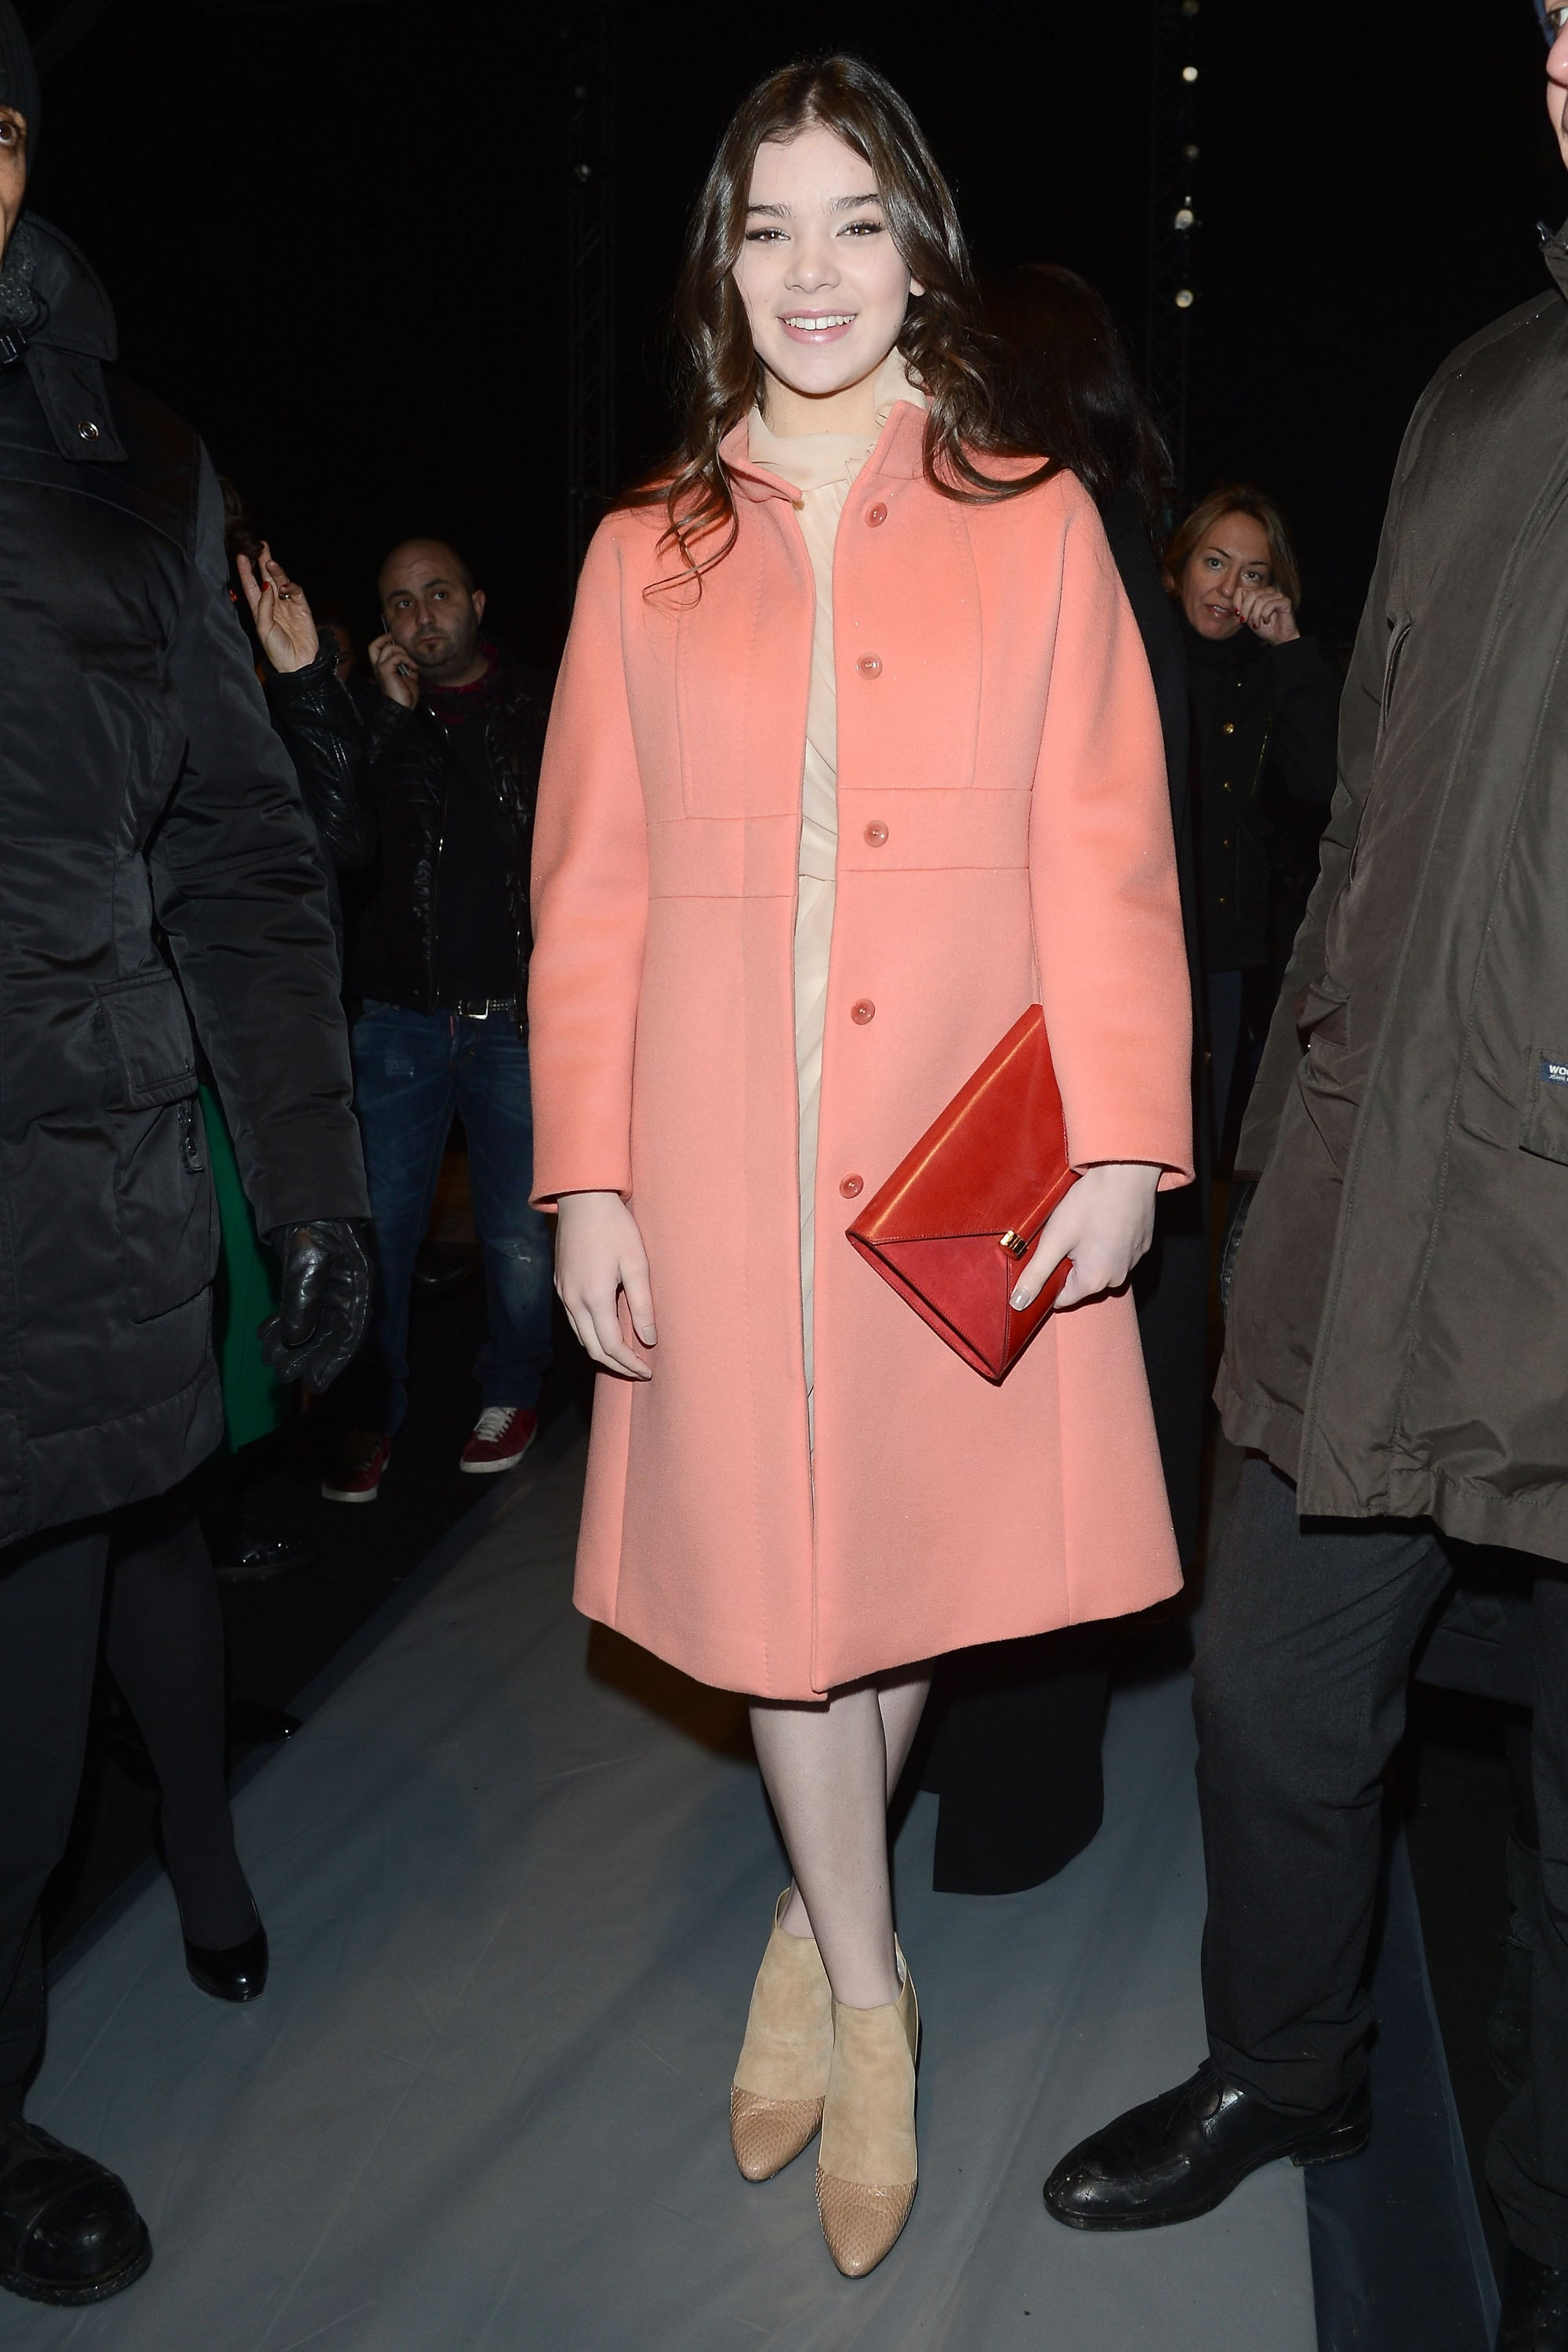 Hailee Steinfeld wore Max Mara at the Max Mara Fall 2013 show in Milan.